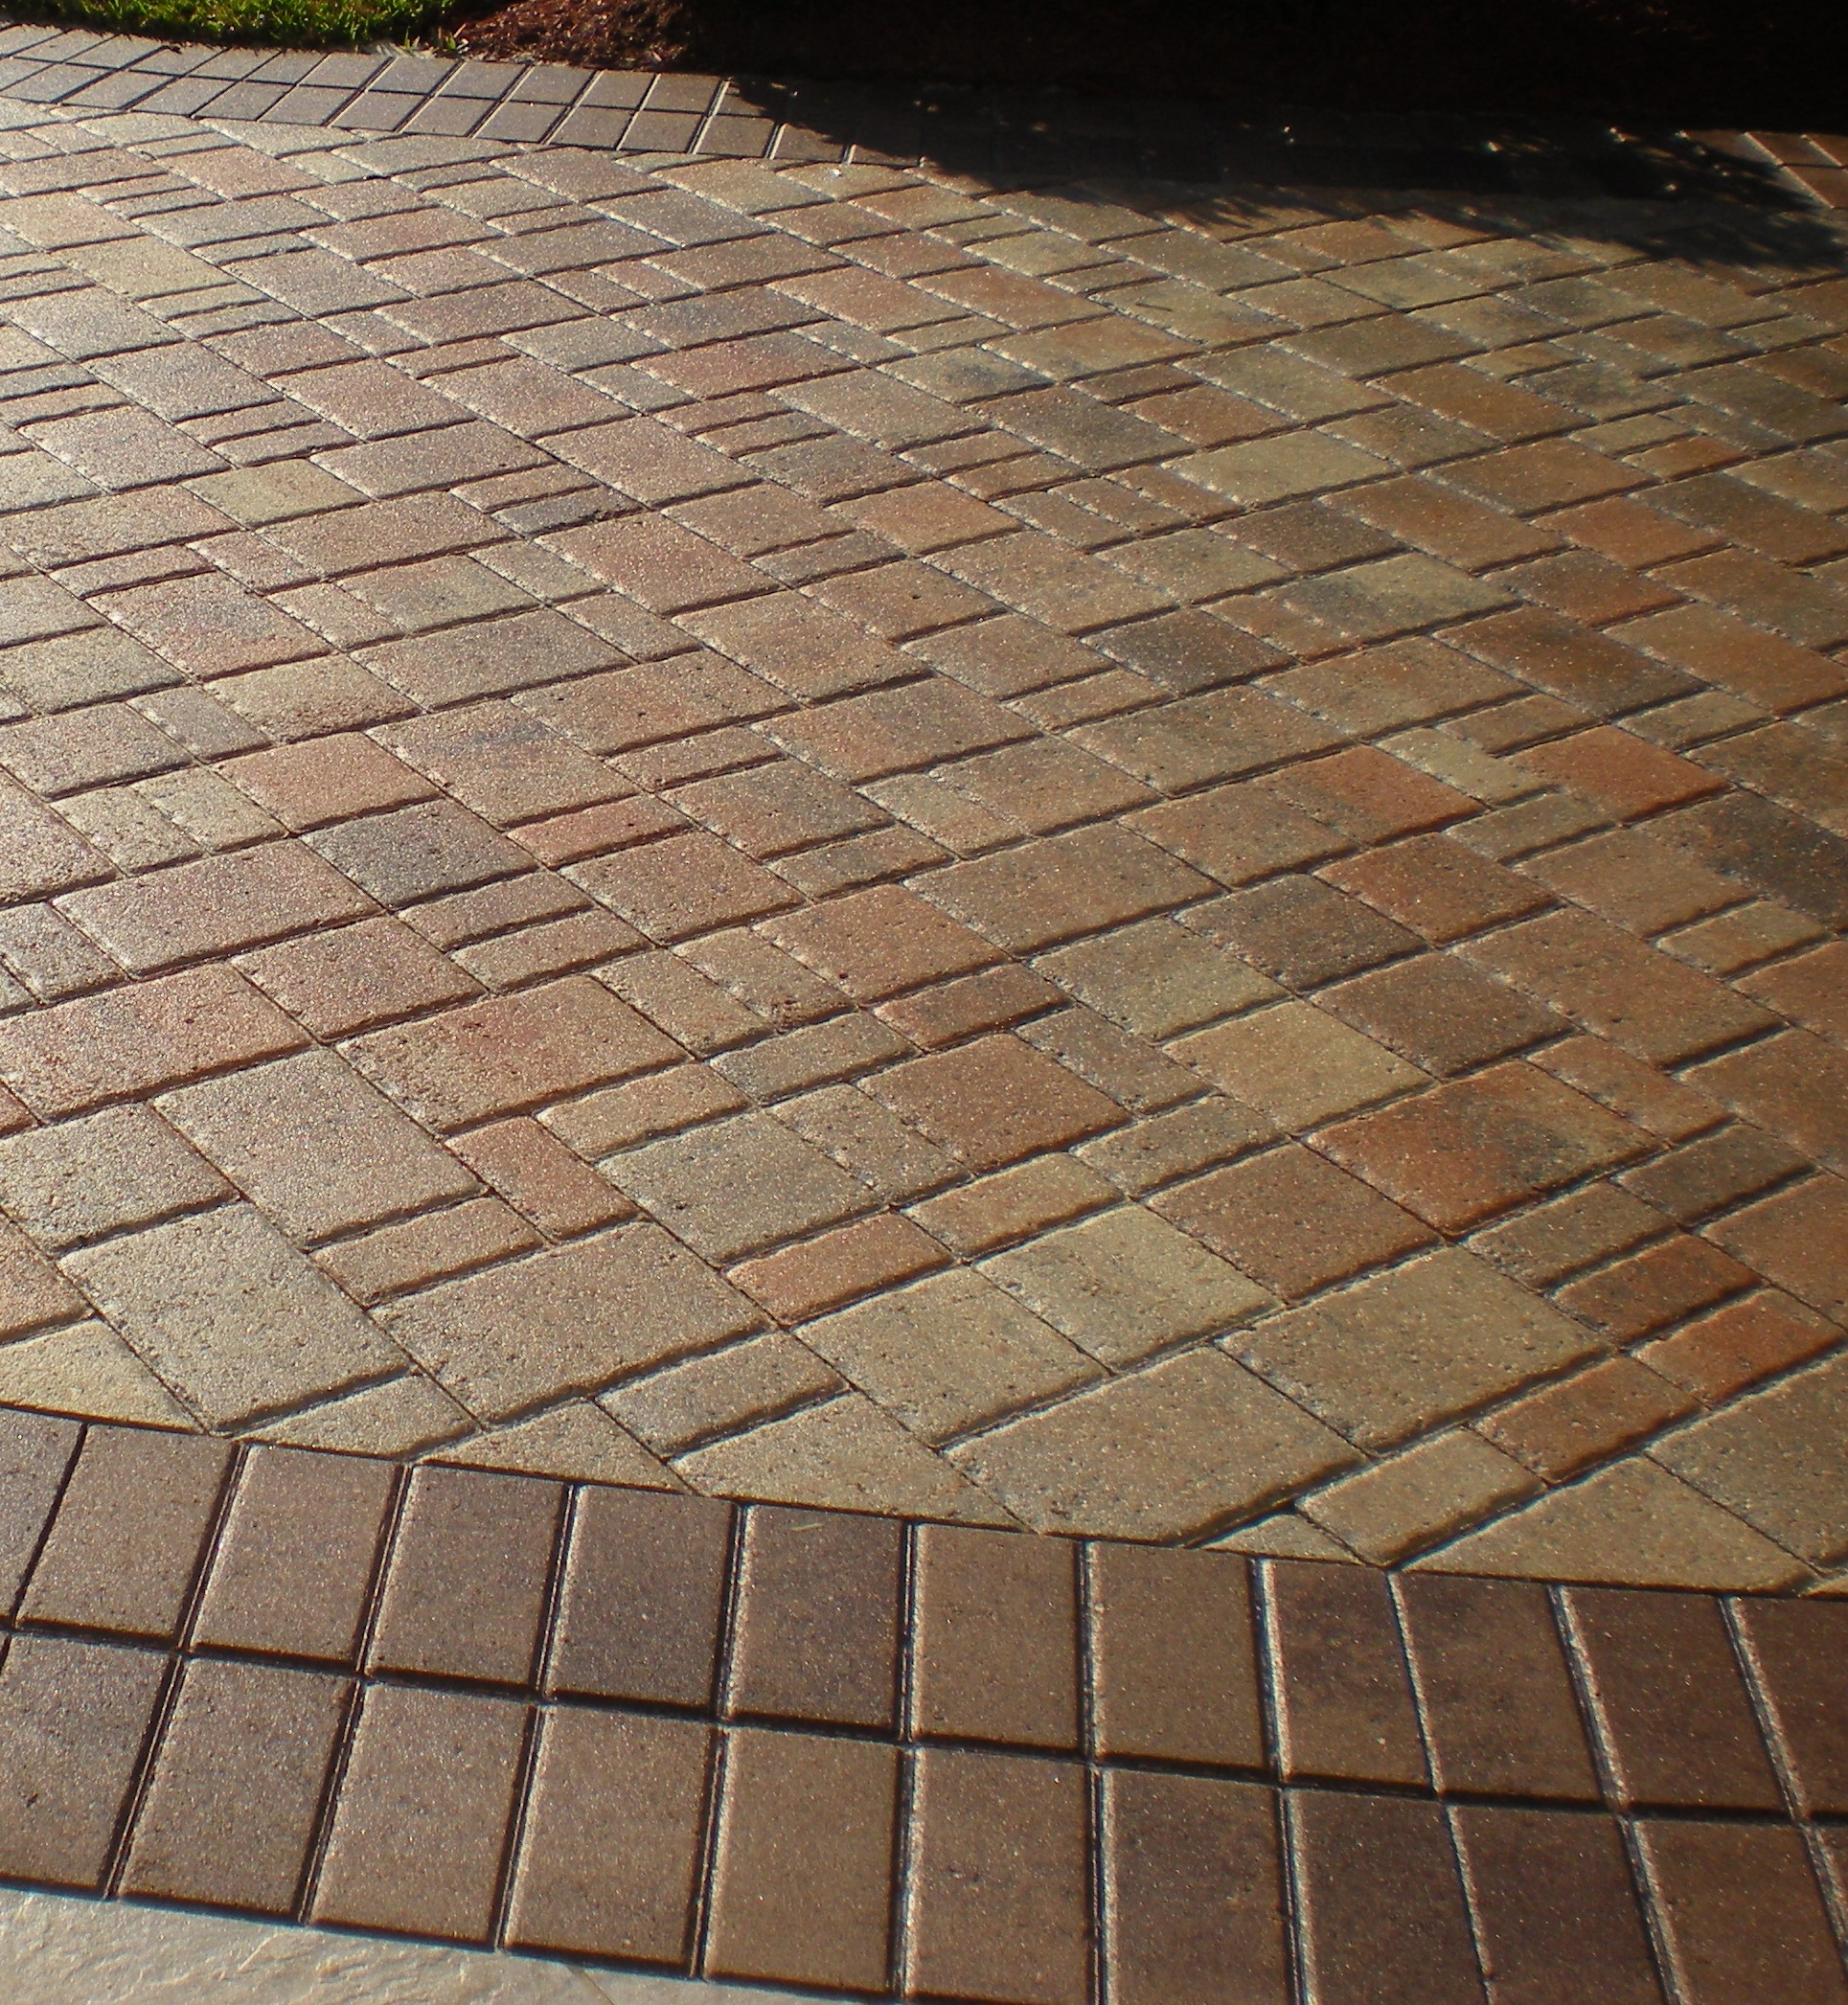 Interlocking Pavers For Driveways Driveway Paver Stones Sealed